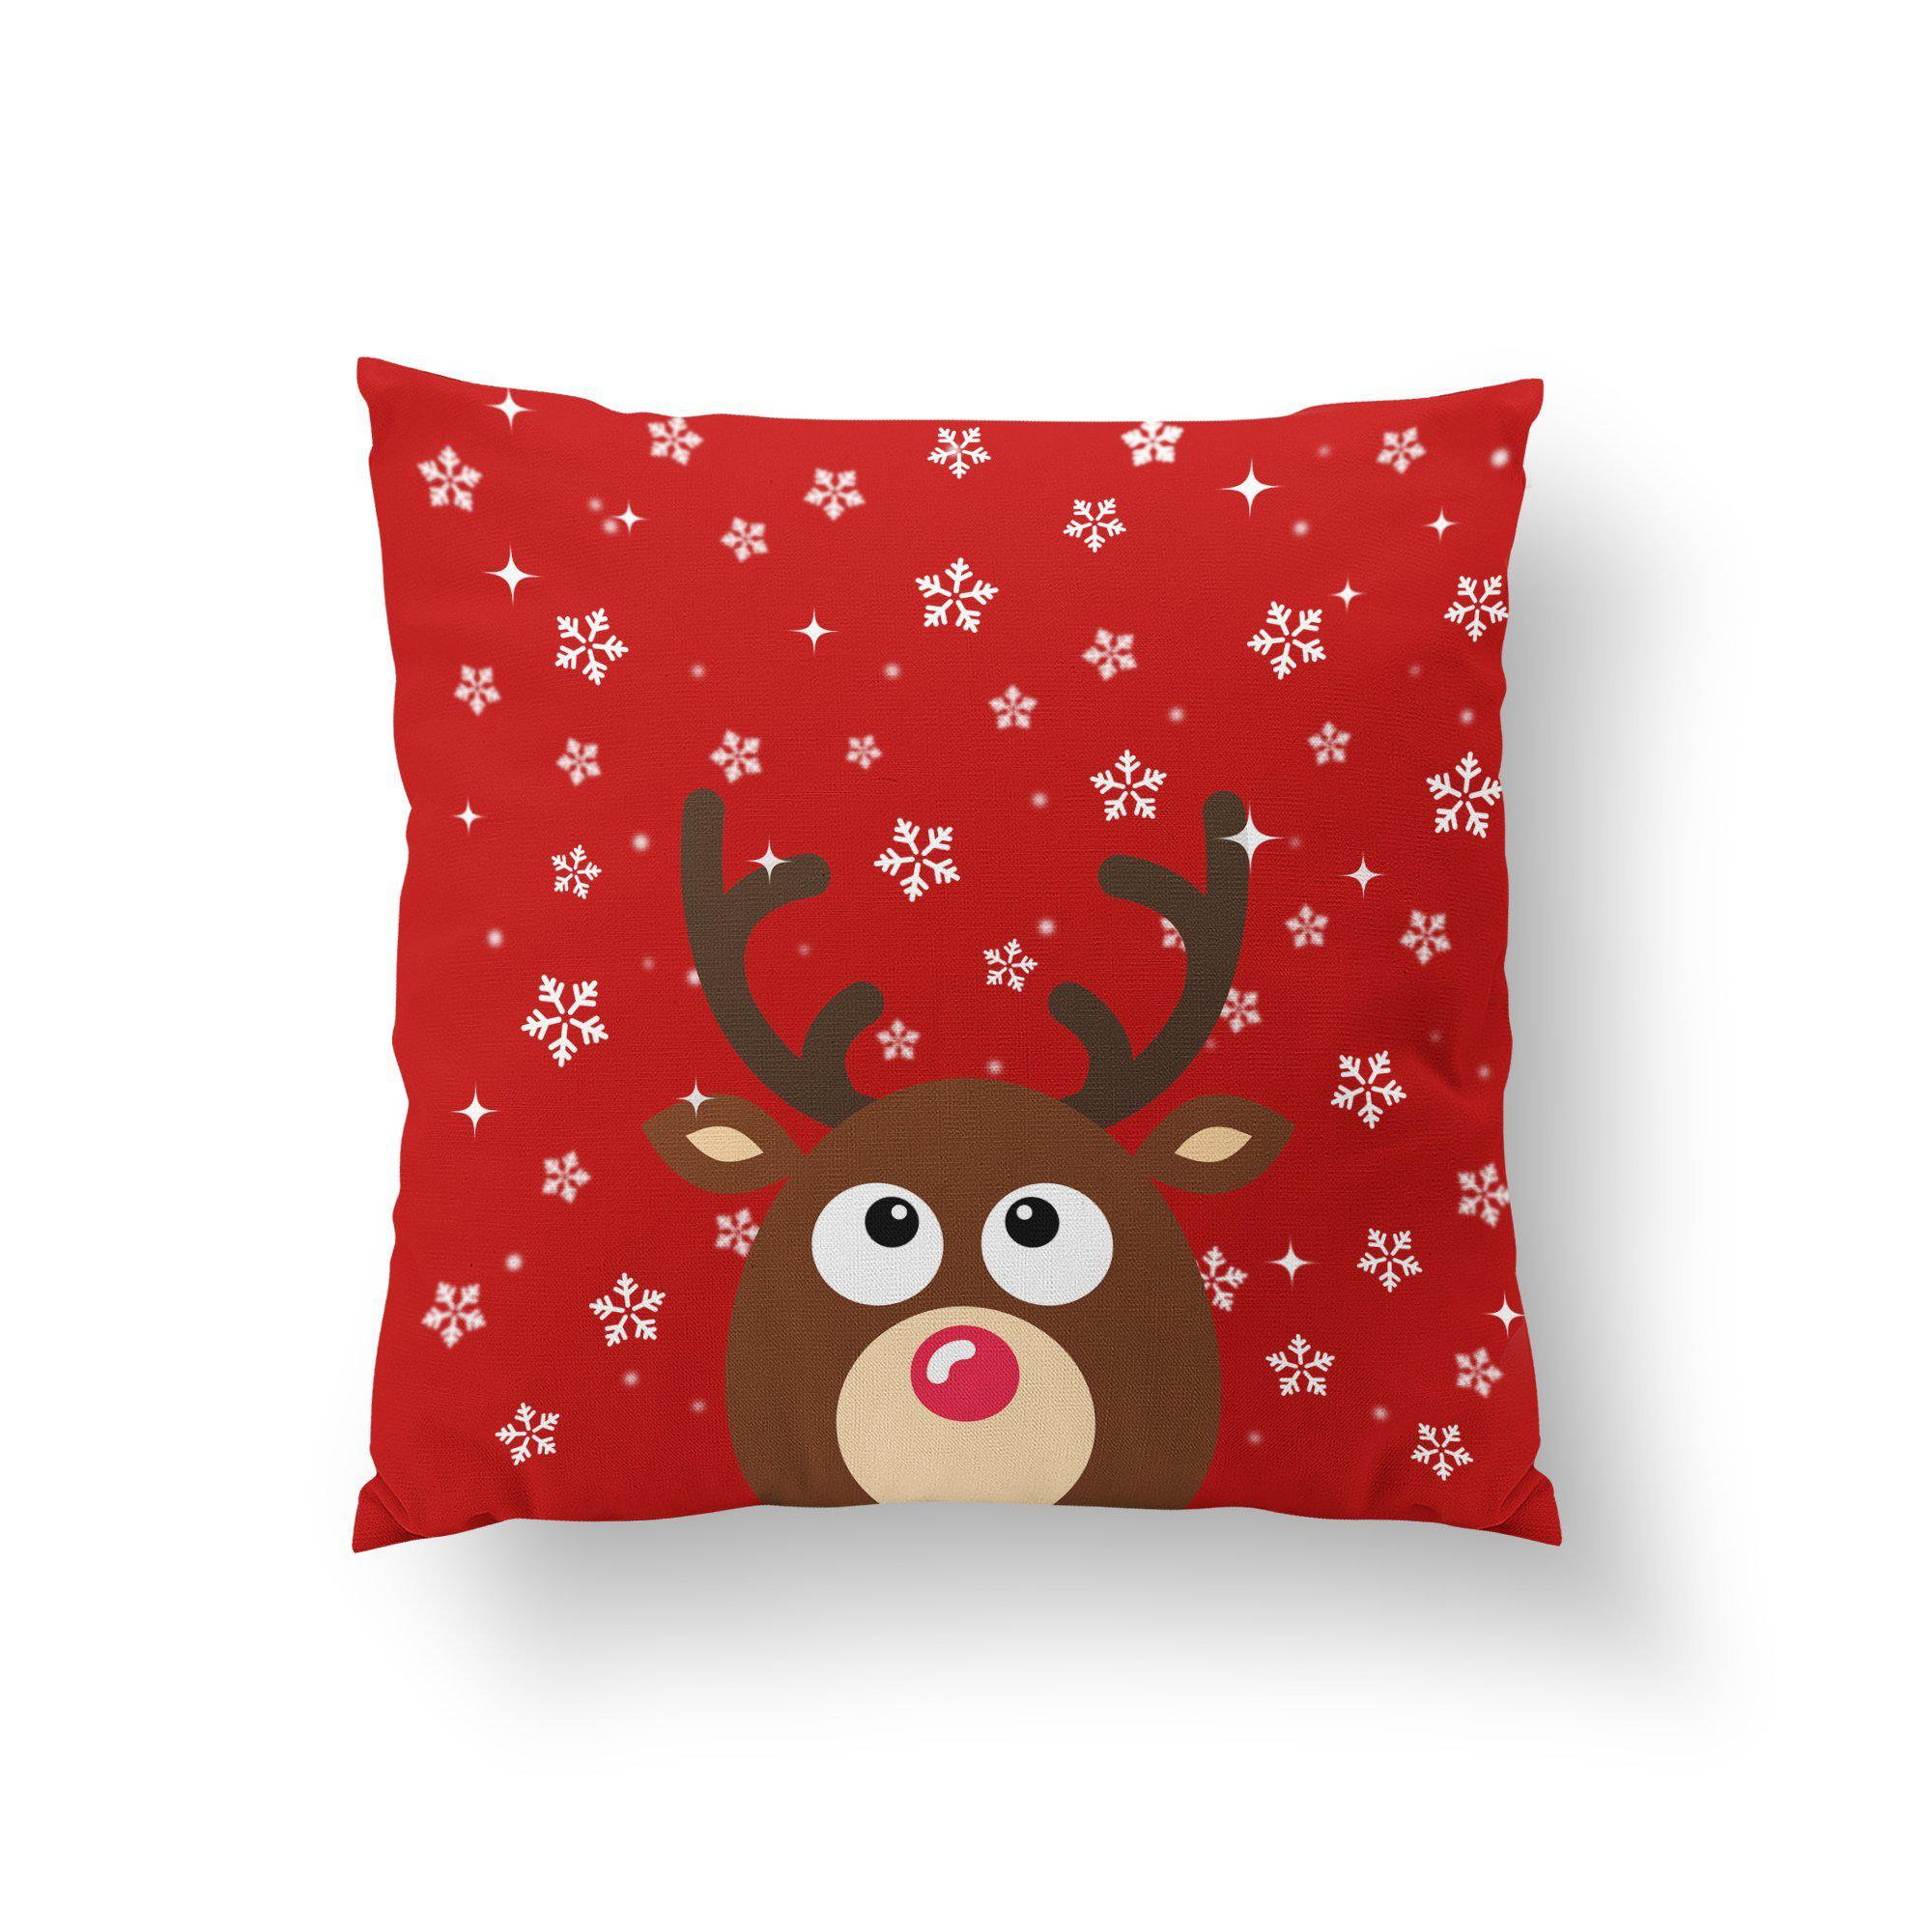 Christmas Reindeer Pillow - Pillow Covers - W.FRANCIS